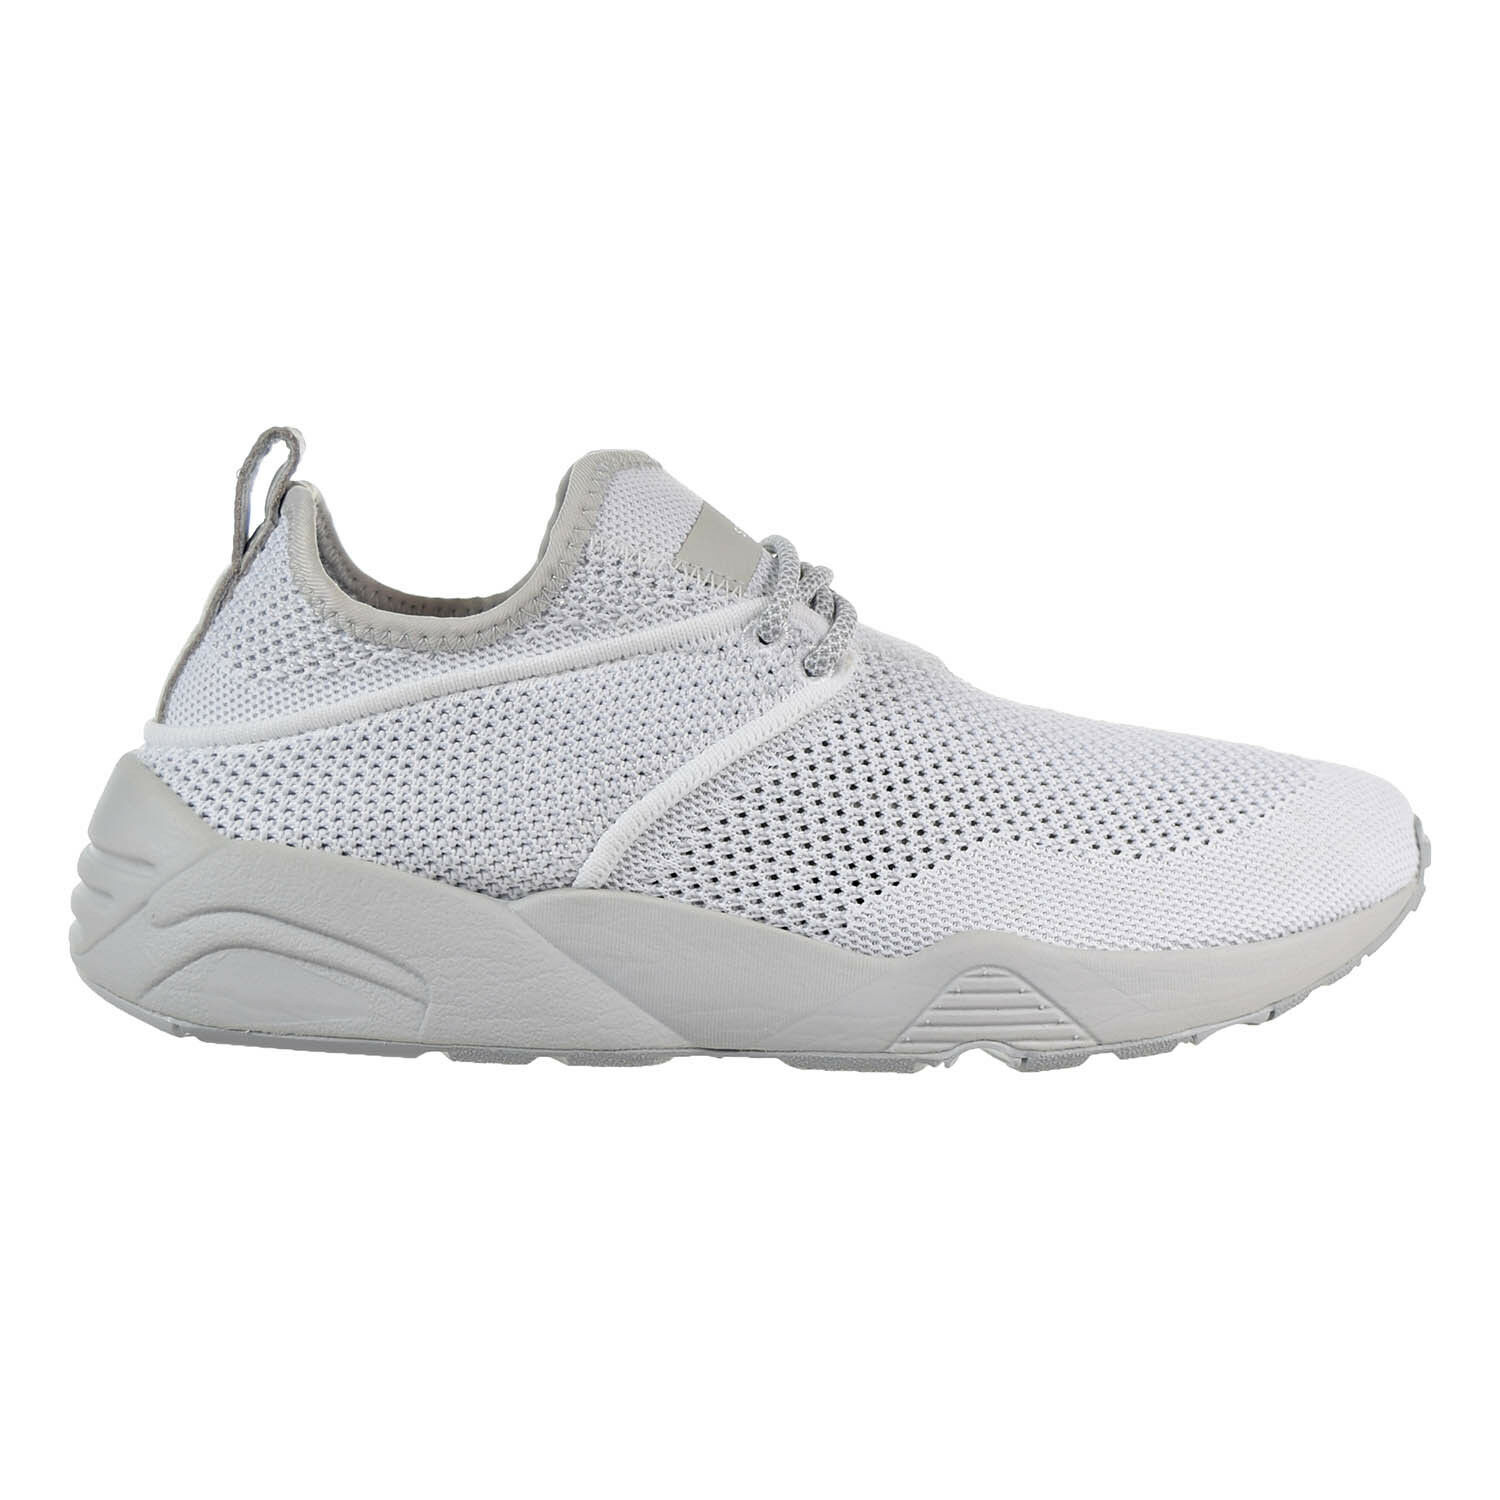 Puma X Stampd Trinomic Woven Mens schuhe High Rise 362744-01